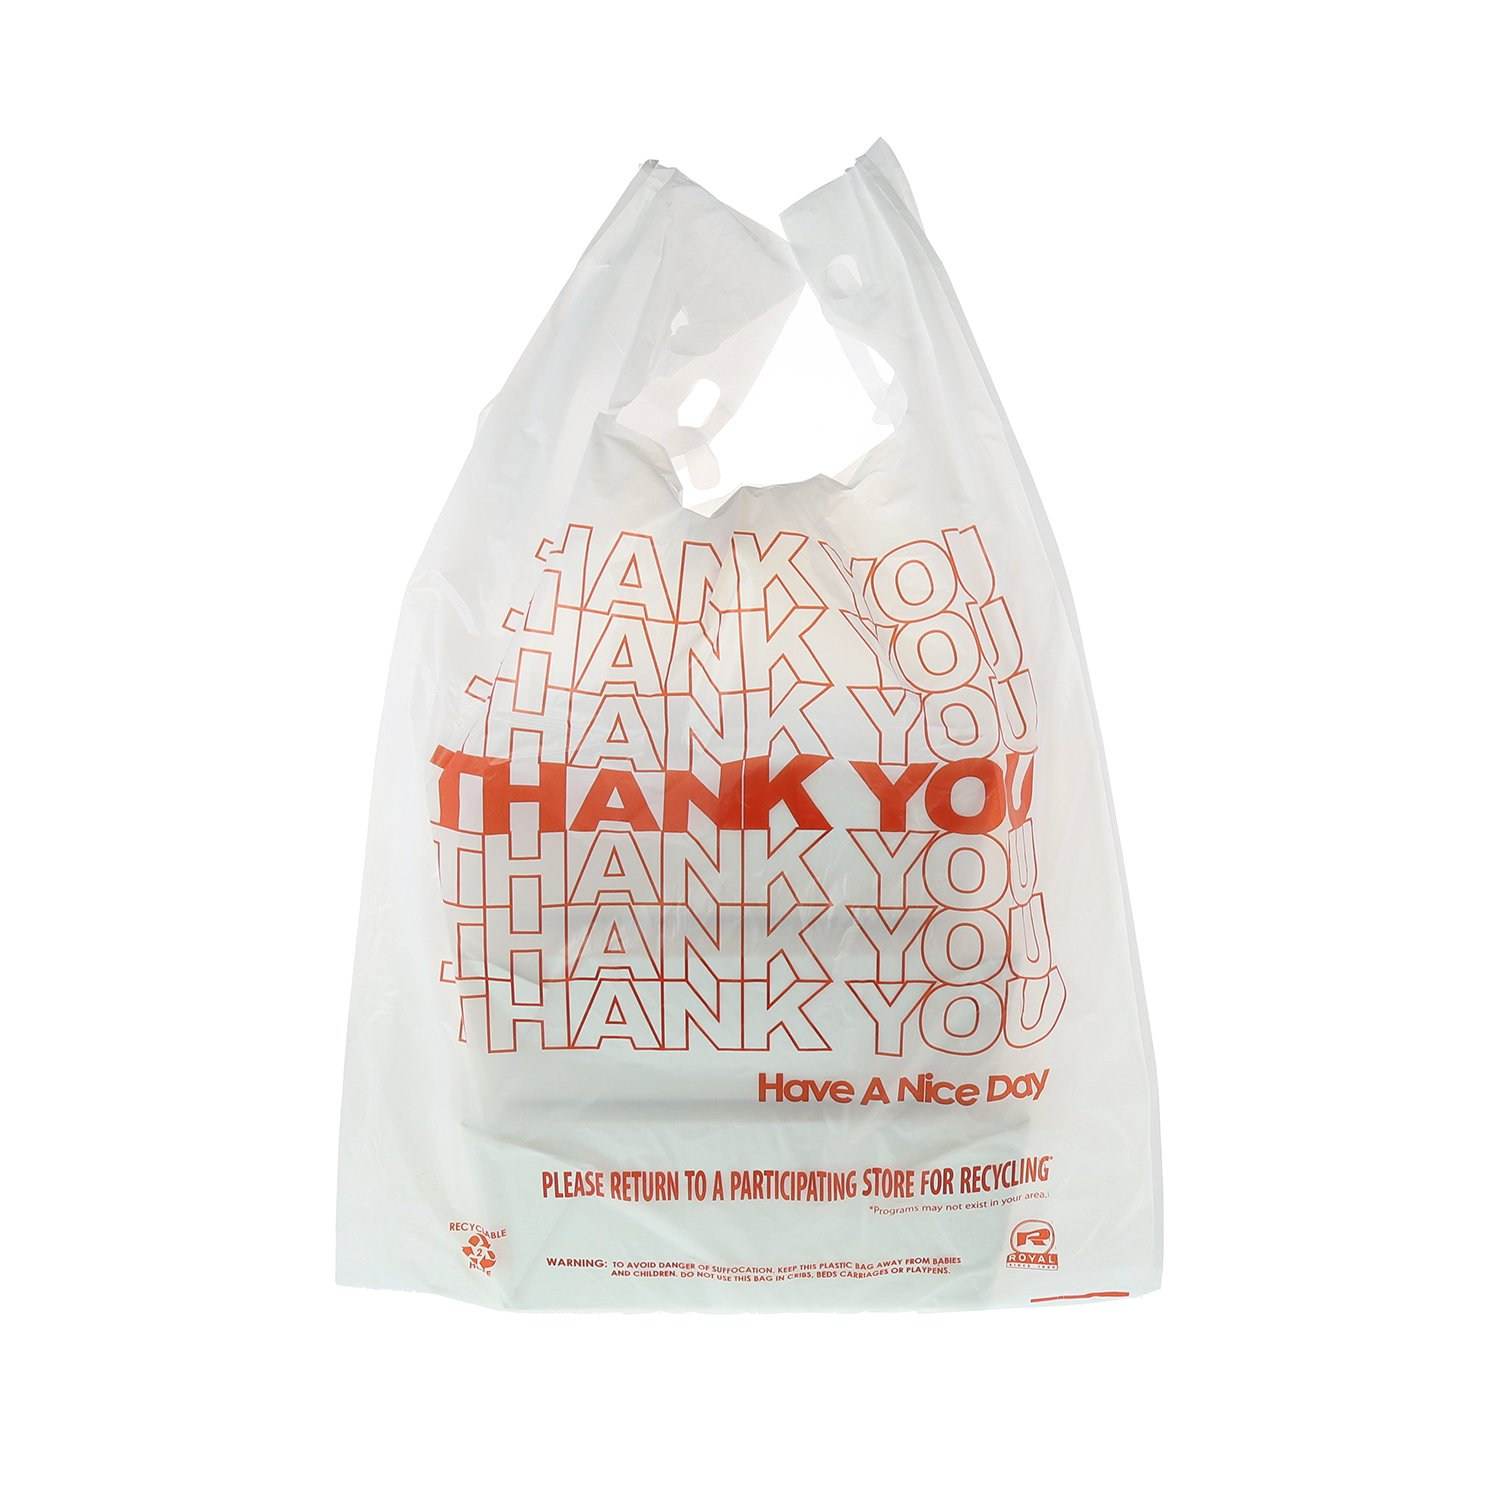 Royal Thank You Plastic Bag, 1/6, 13'' x 8'' x 23'', 14 Mic, Package of 1000